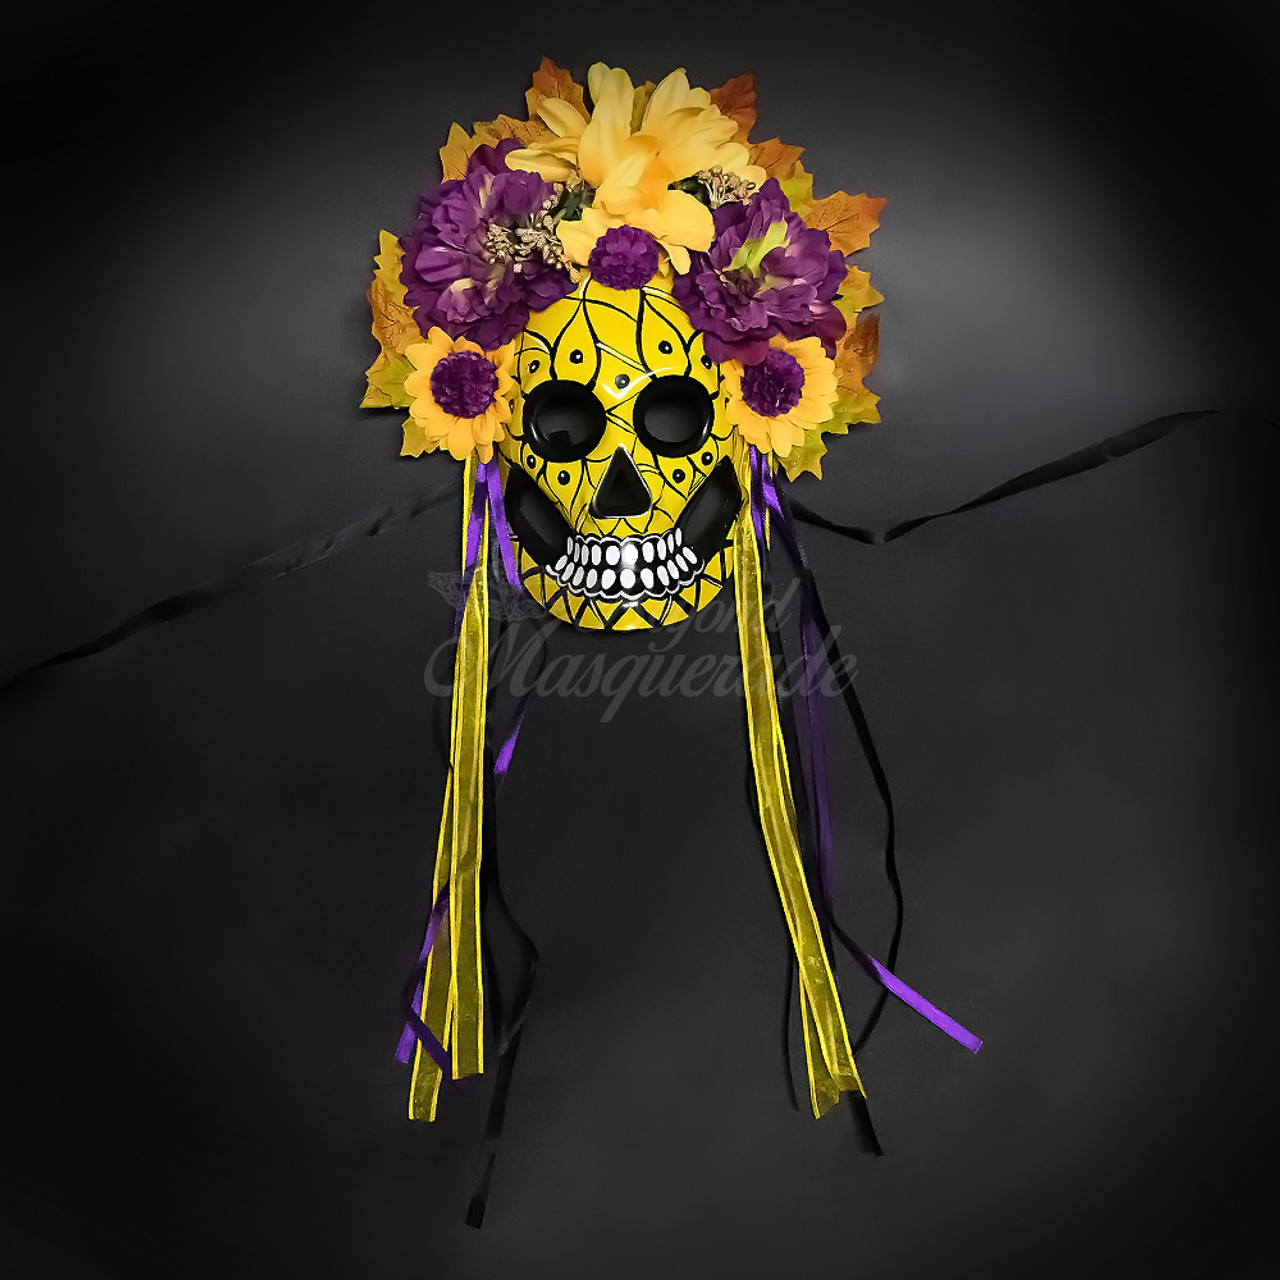 Day of the Dead Mask Dia de los Muertos Masquerade Mask for Women M38038